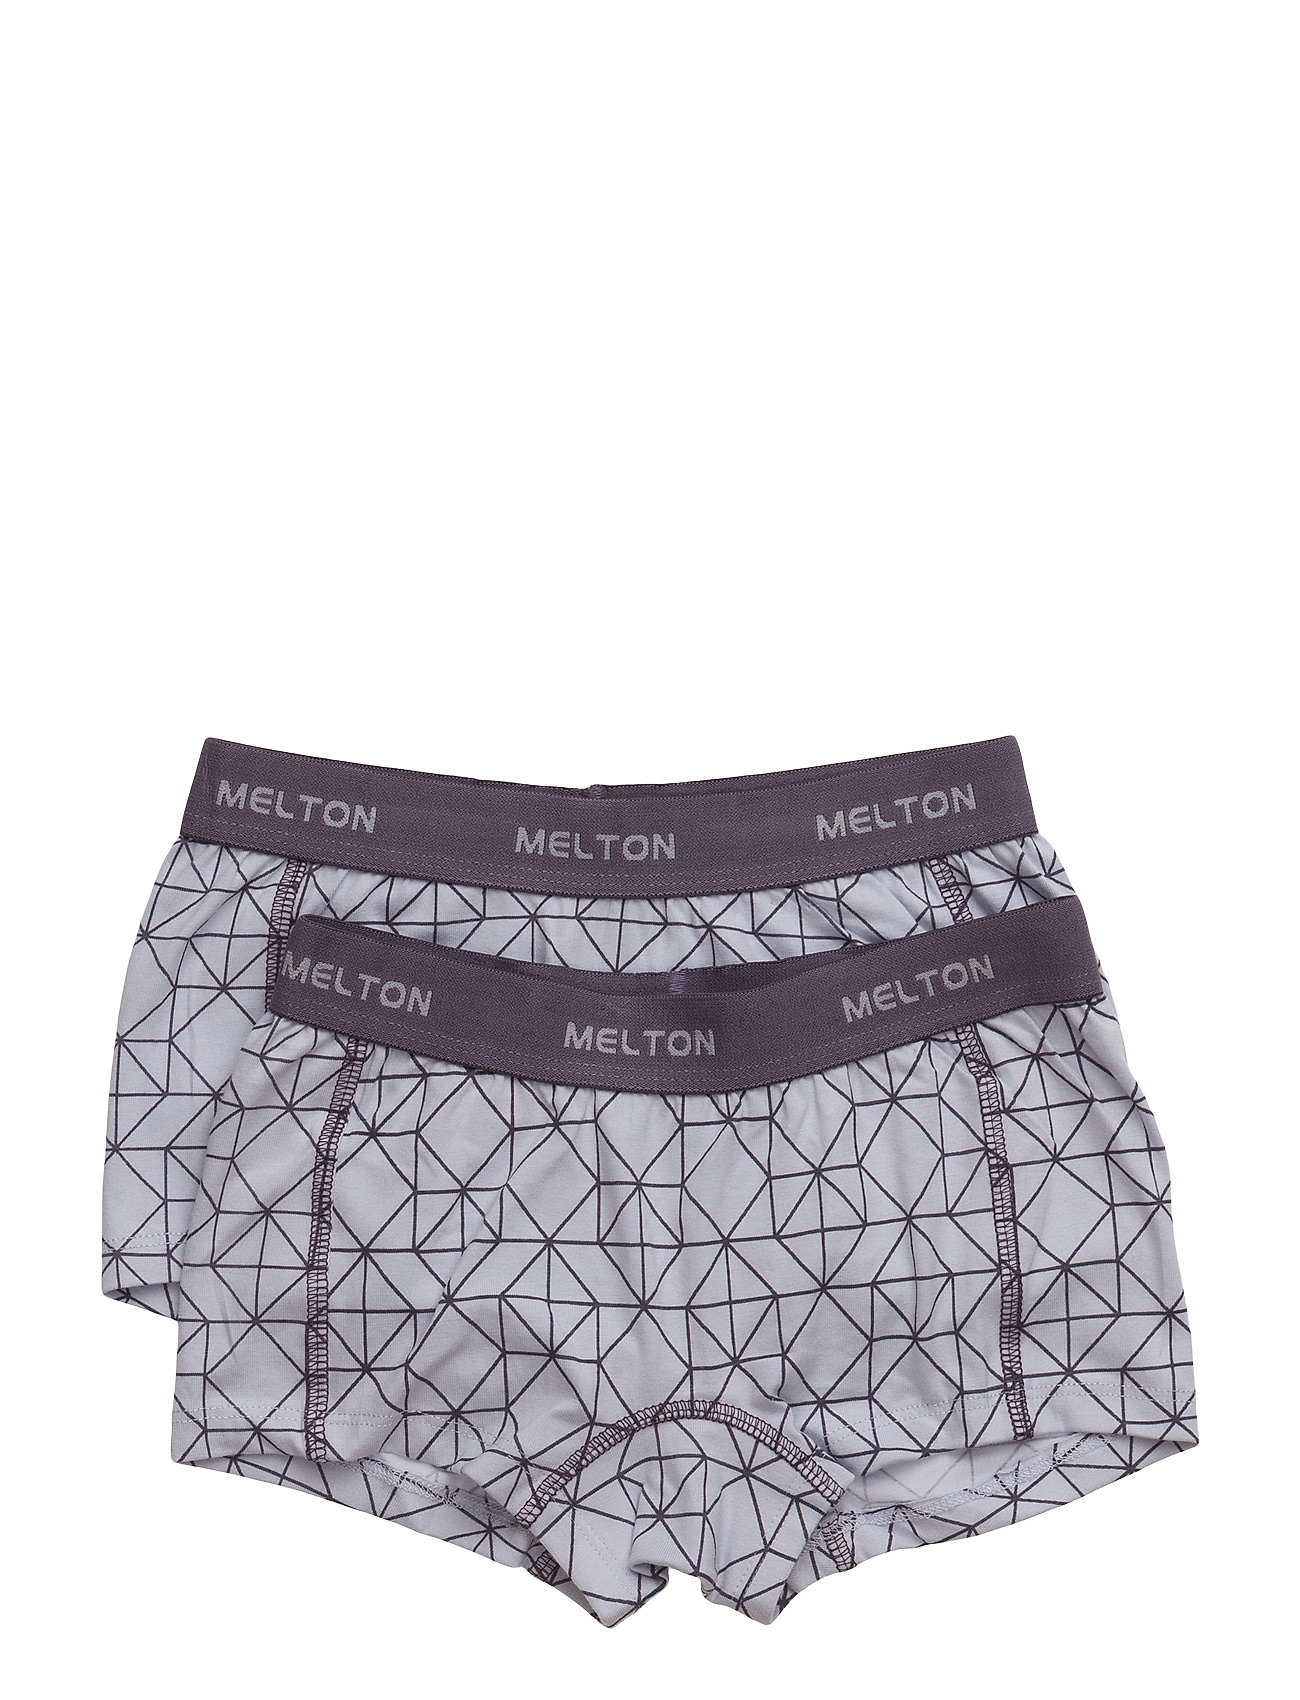 Melton Numbers, 2-pk AOP Girl Shorts